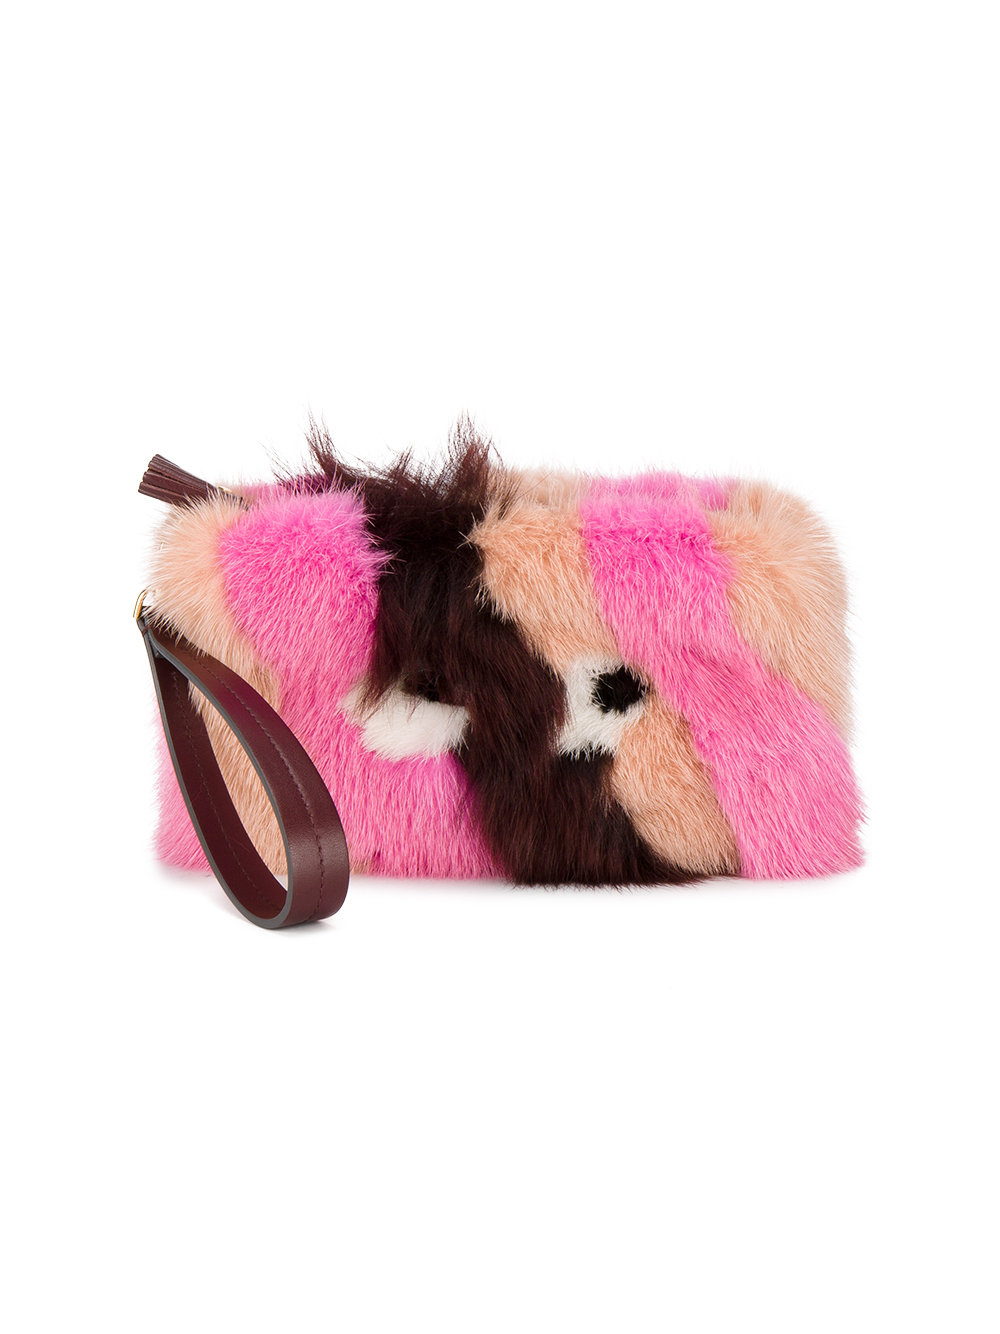 Anya Hindmach furry clutch eyes in mink